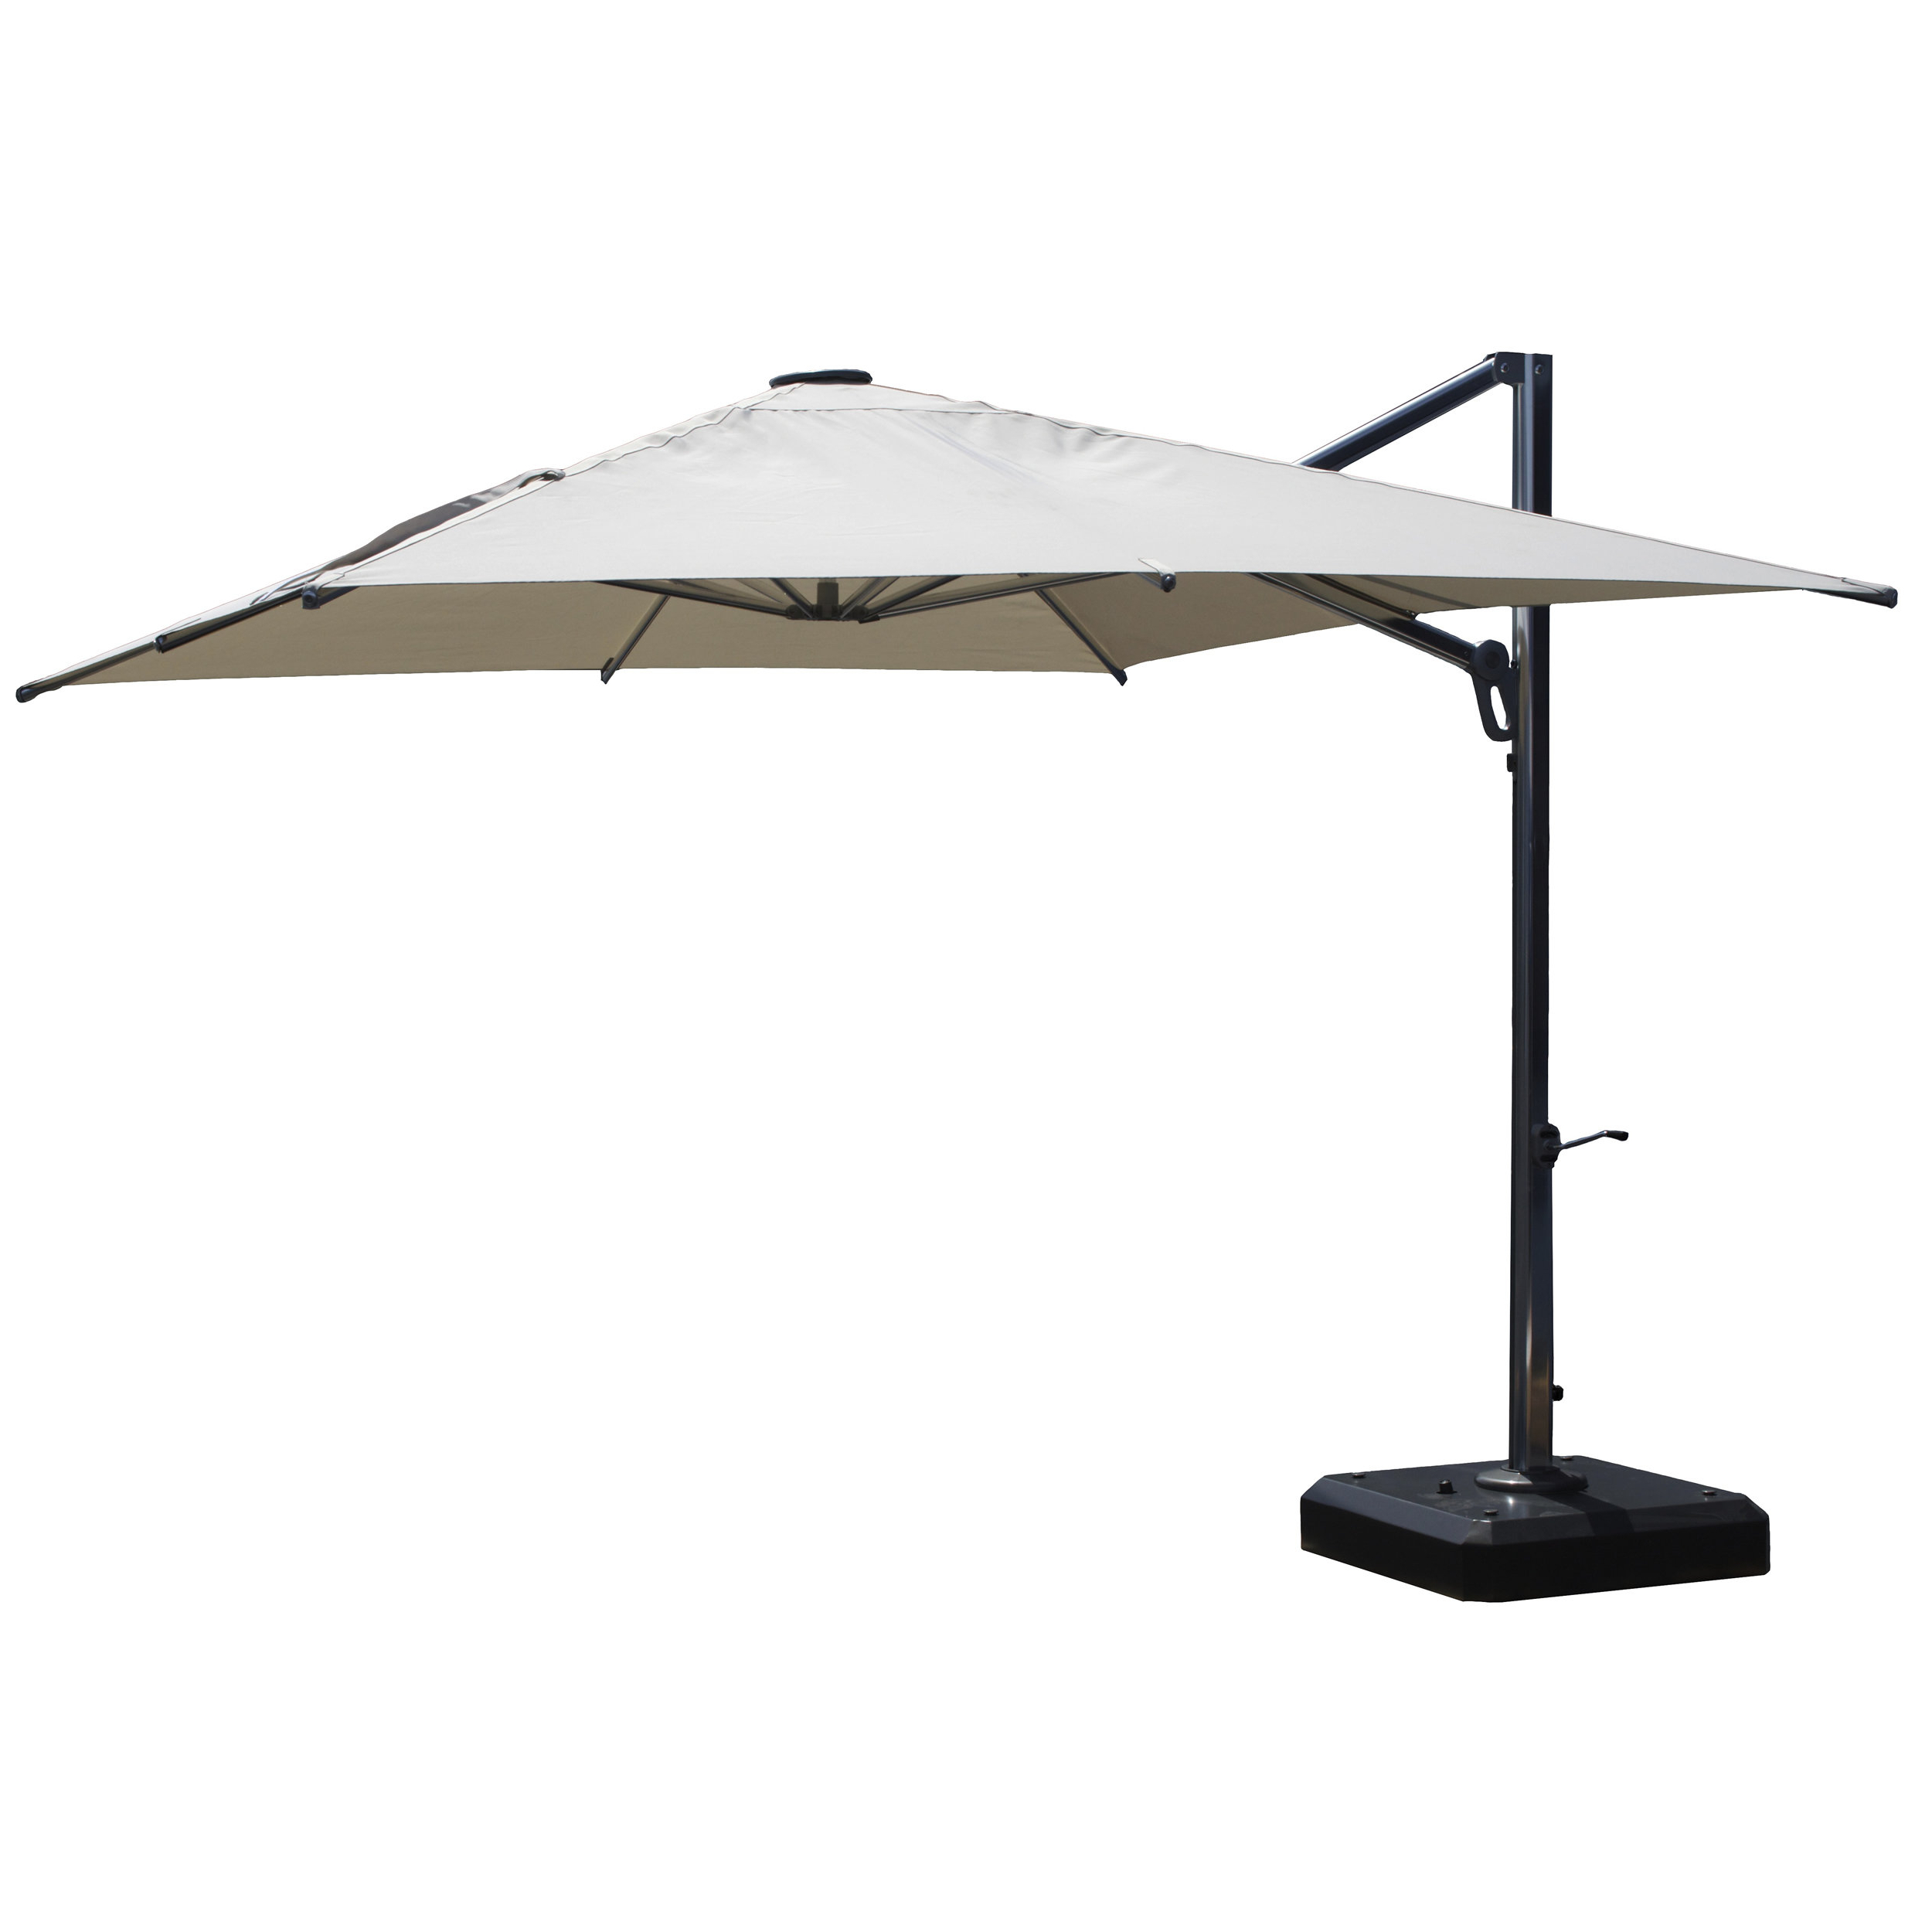 Well Known Spitler Square Cantilever Umbrellas Intended For 10' Square Cantilever Umbrella (View 18 of 20)